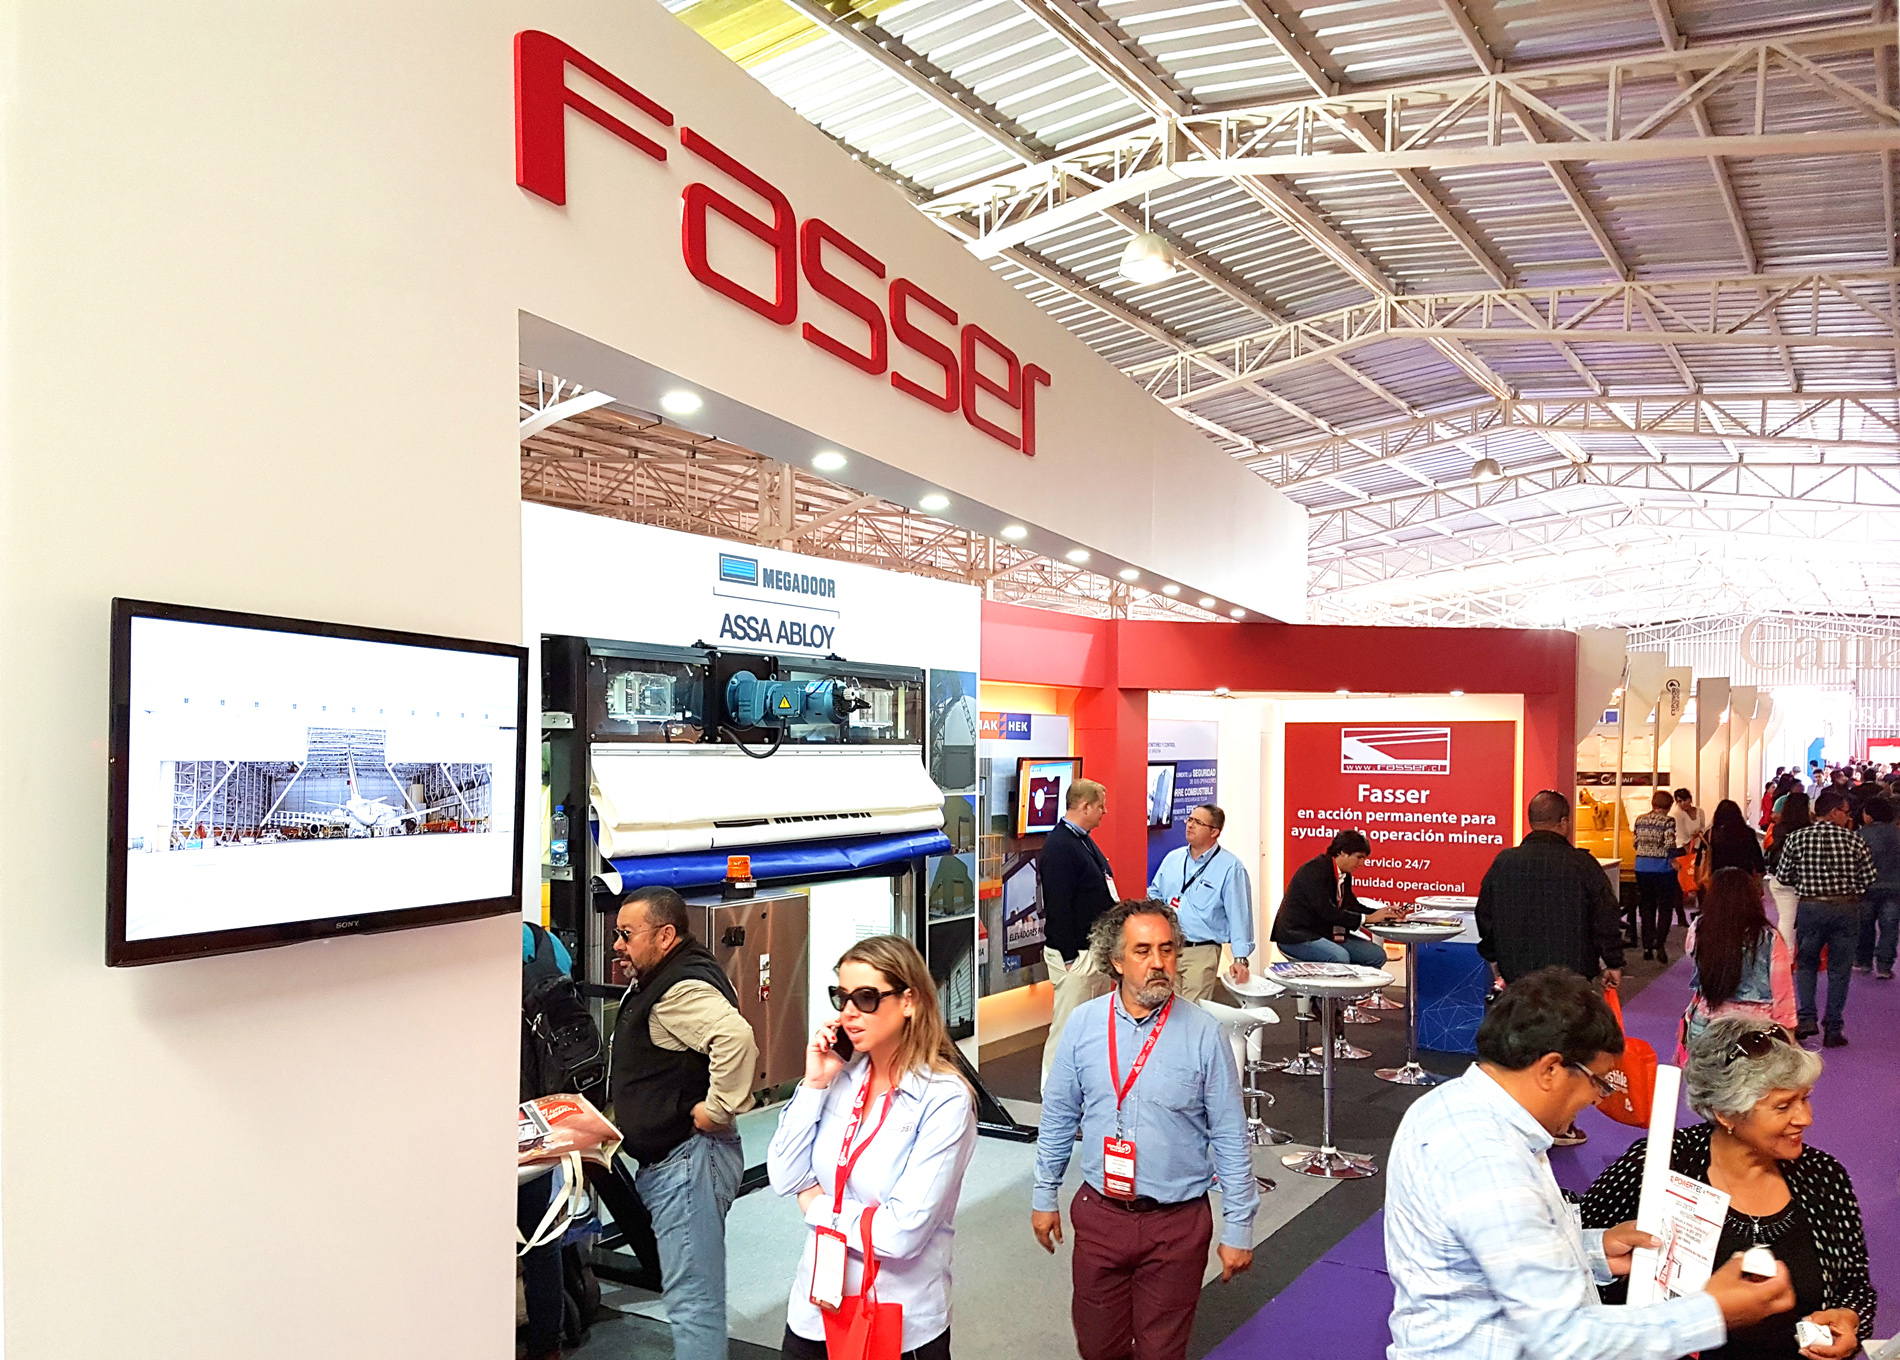 RCT exhibited with channel partner, Fasser at this year's Exponor in Chile.